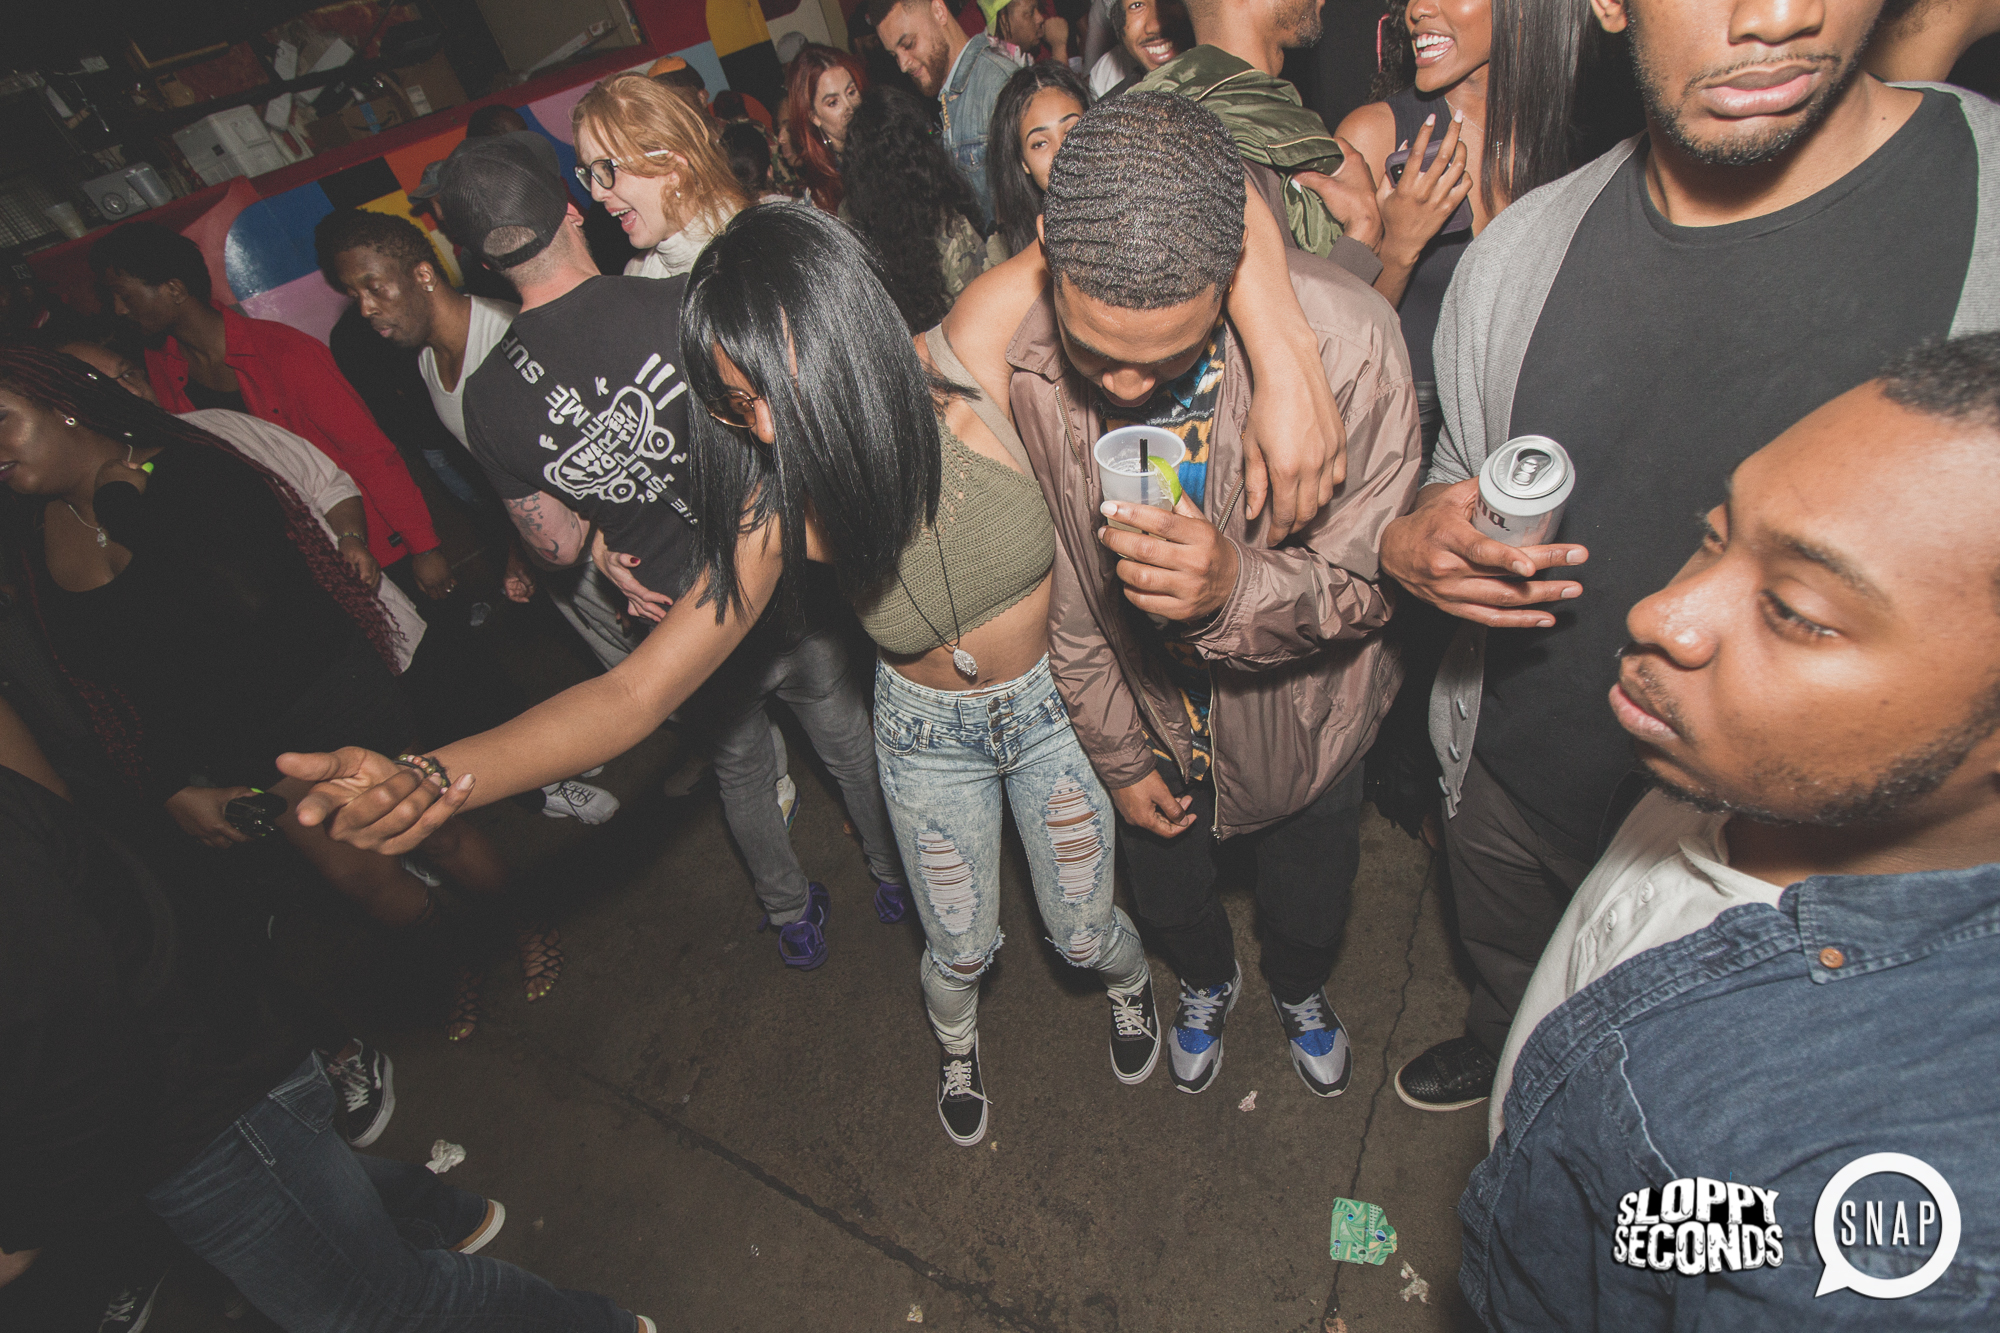 121Sloppy Seconds March2019 oh snap kid atlanta.JPG